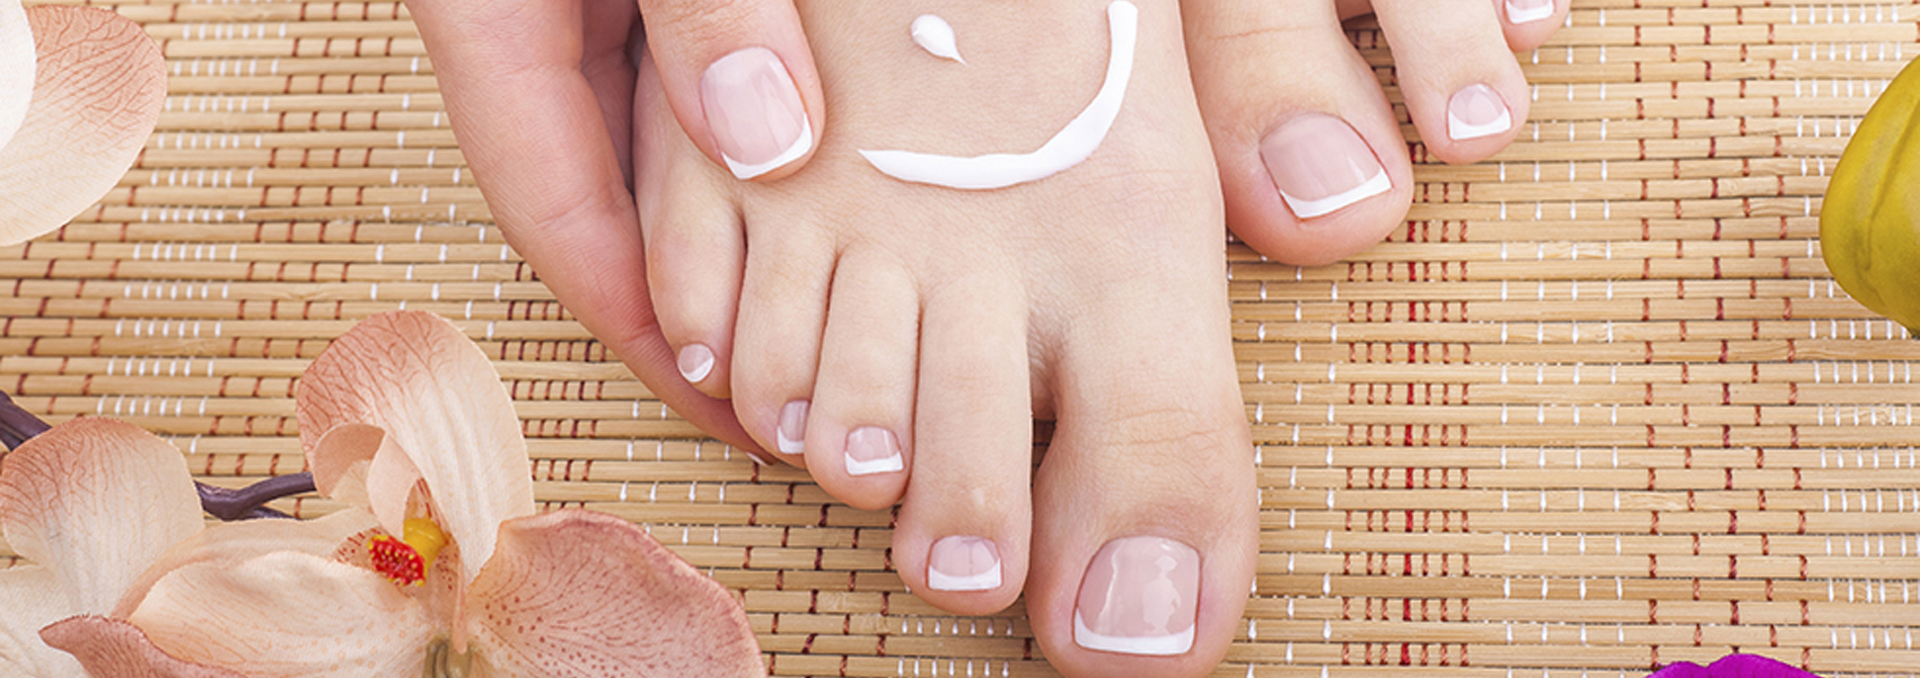 90 S Nails Spa Nail Salon In Waterville Maine 04901